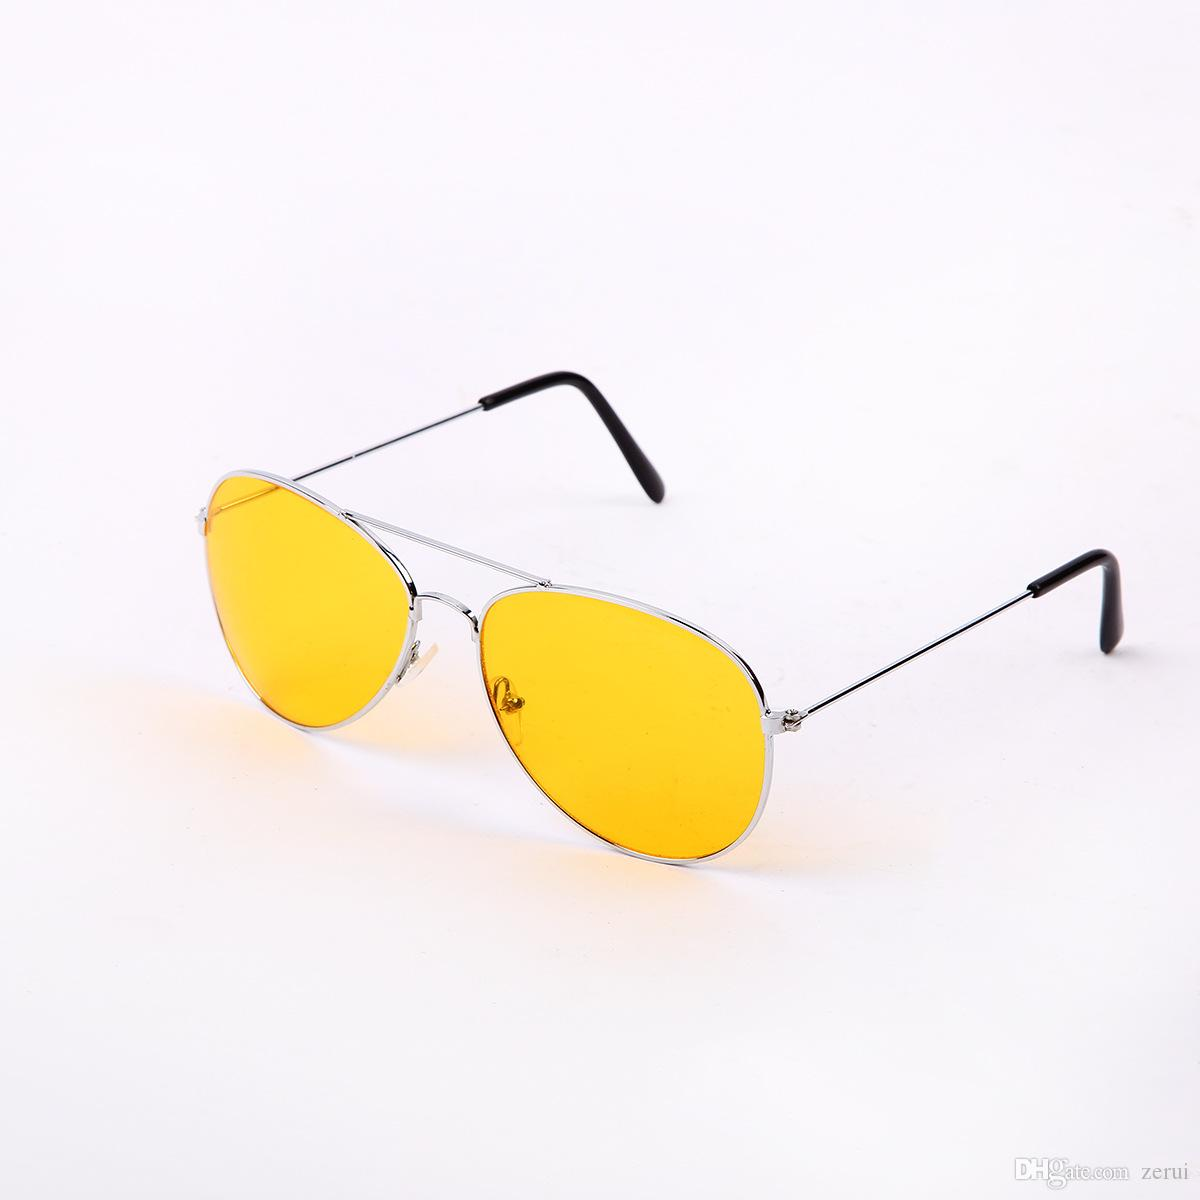 f4bf00cd732 New Women Mens Polarized Night Driving Sunglasses Men Brand Designer Yellow  Lens Night Vision Driving Glasses Goggles Reduce Glare Spitfire Sunglasses  ...